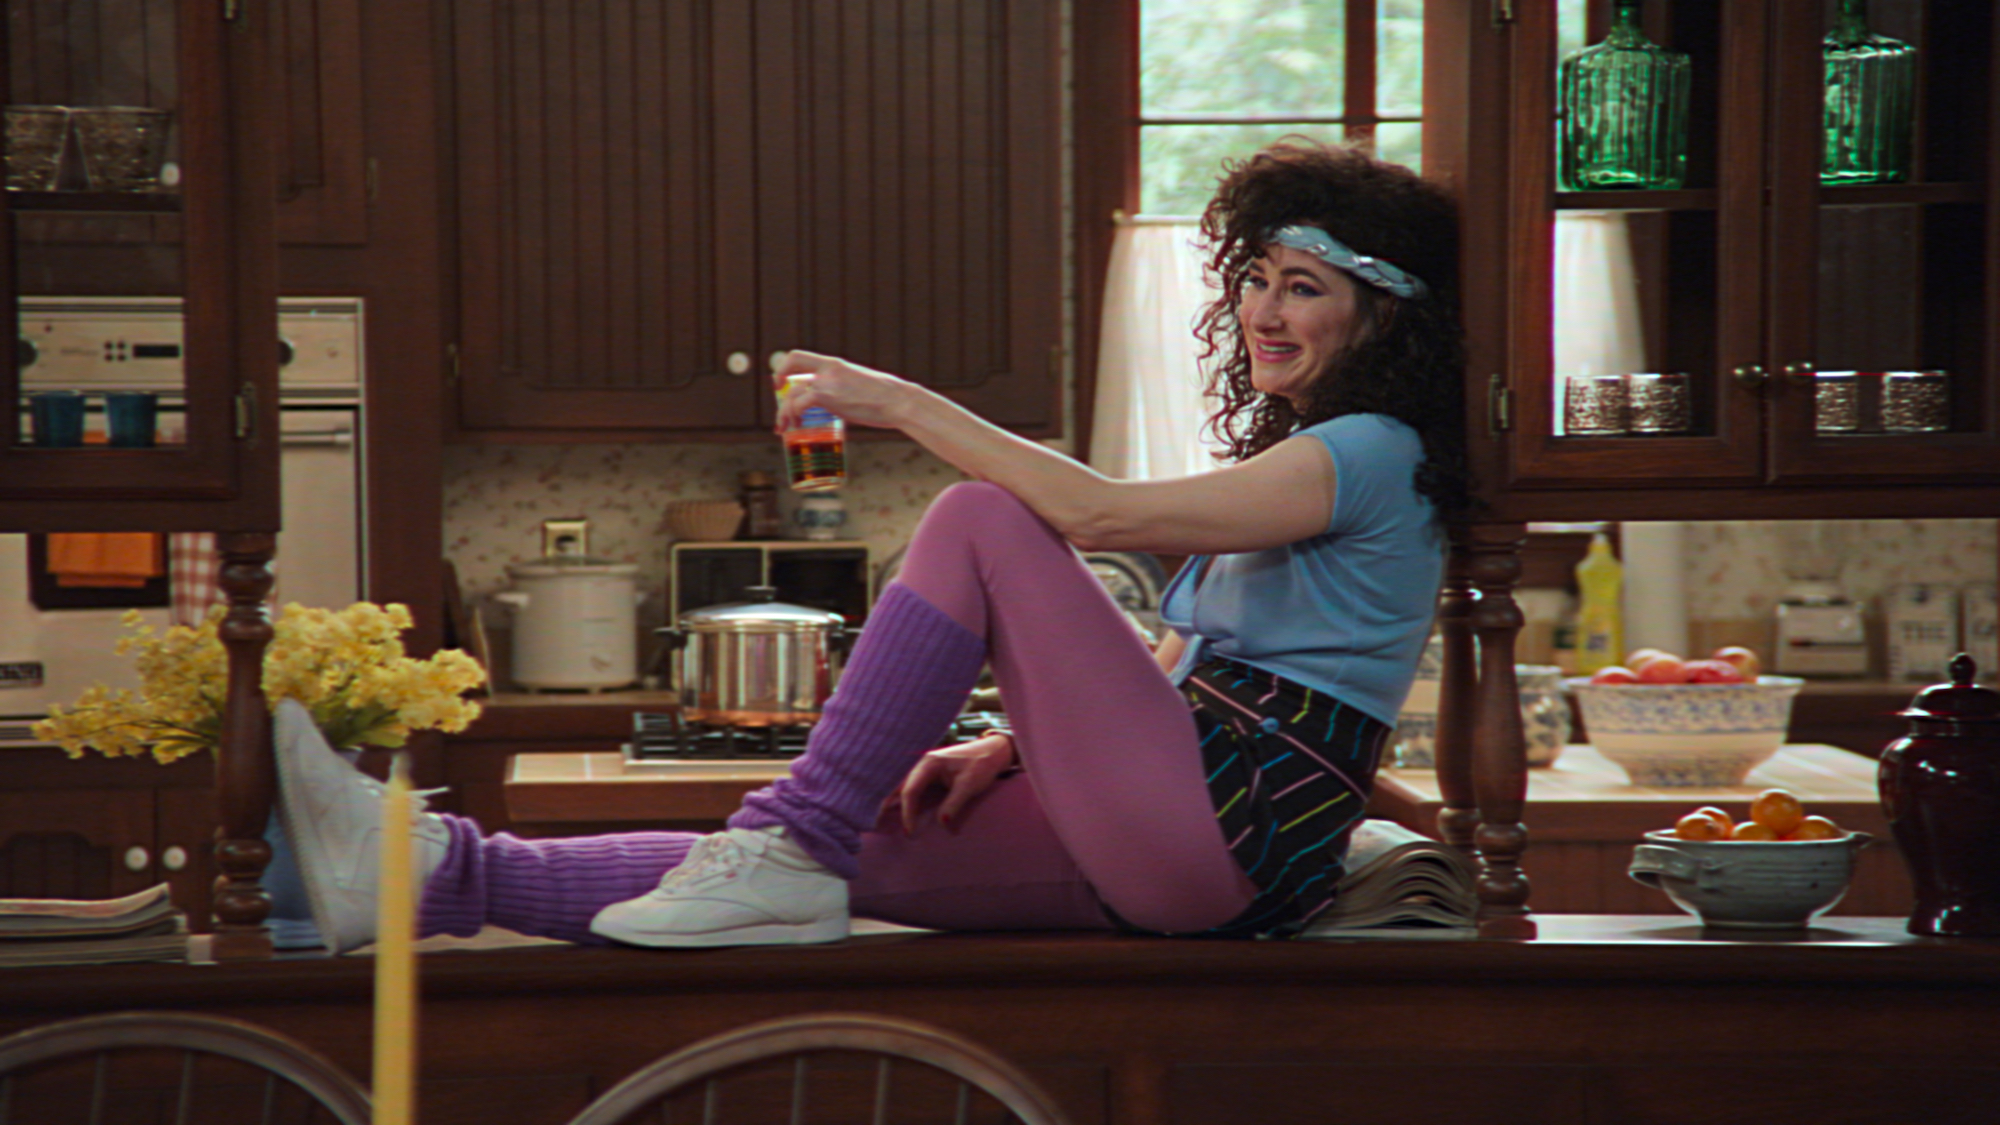 Kathryn Hahn as Agnes in her 80s outfit in 'WandaVision'